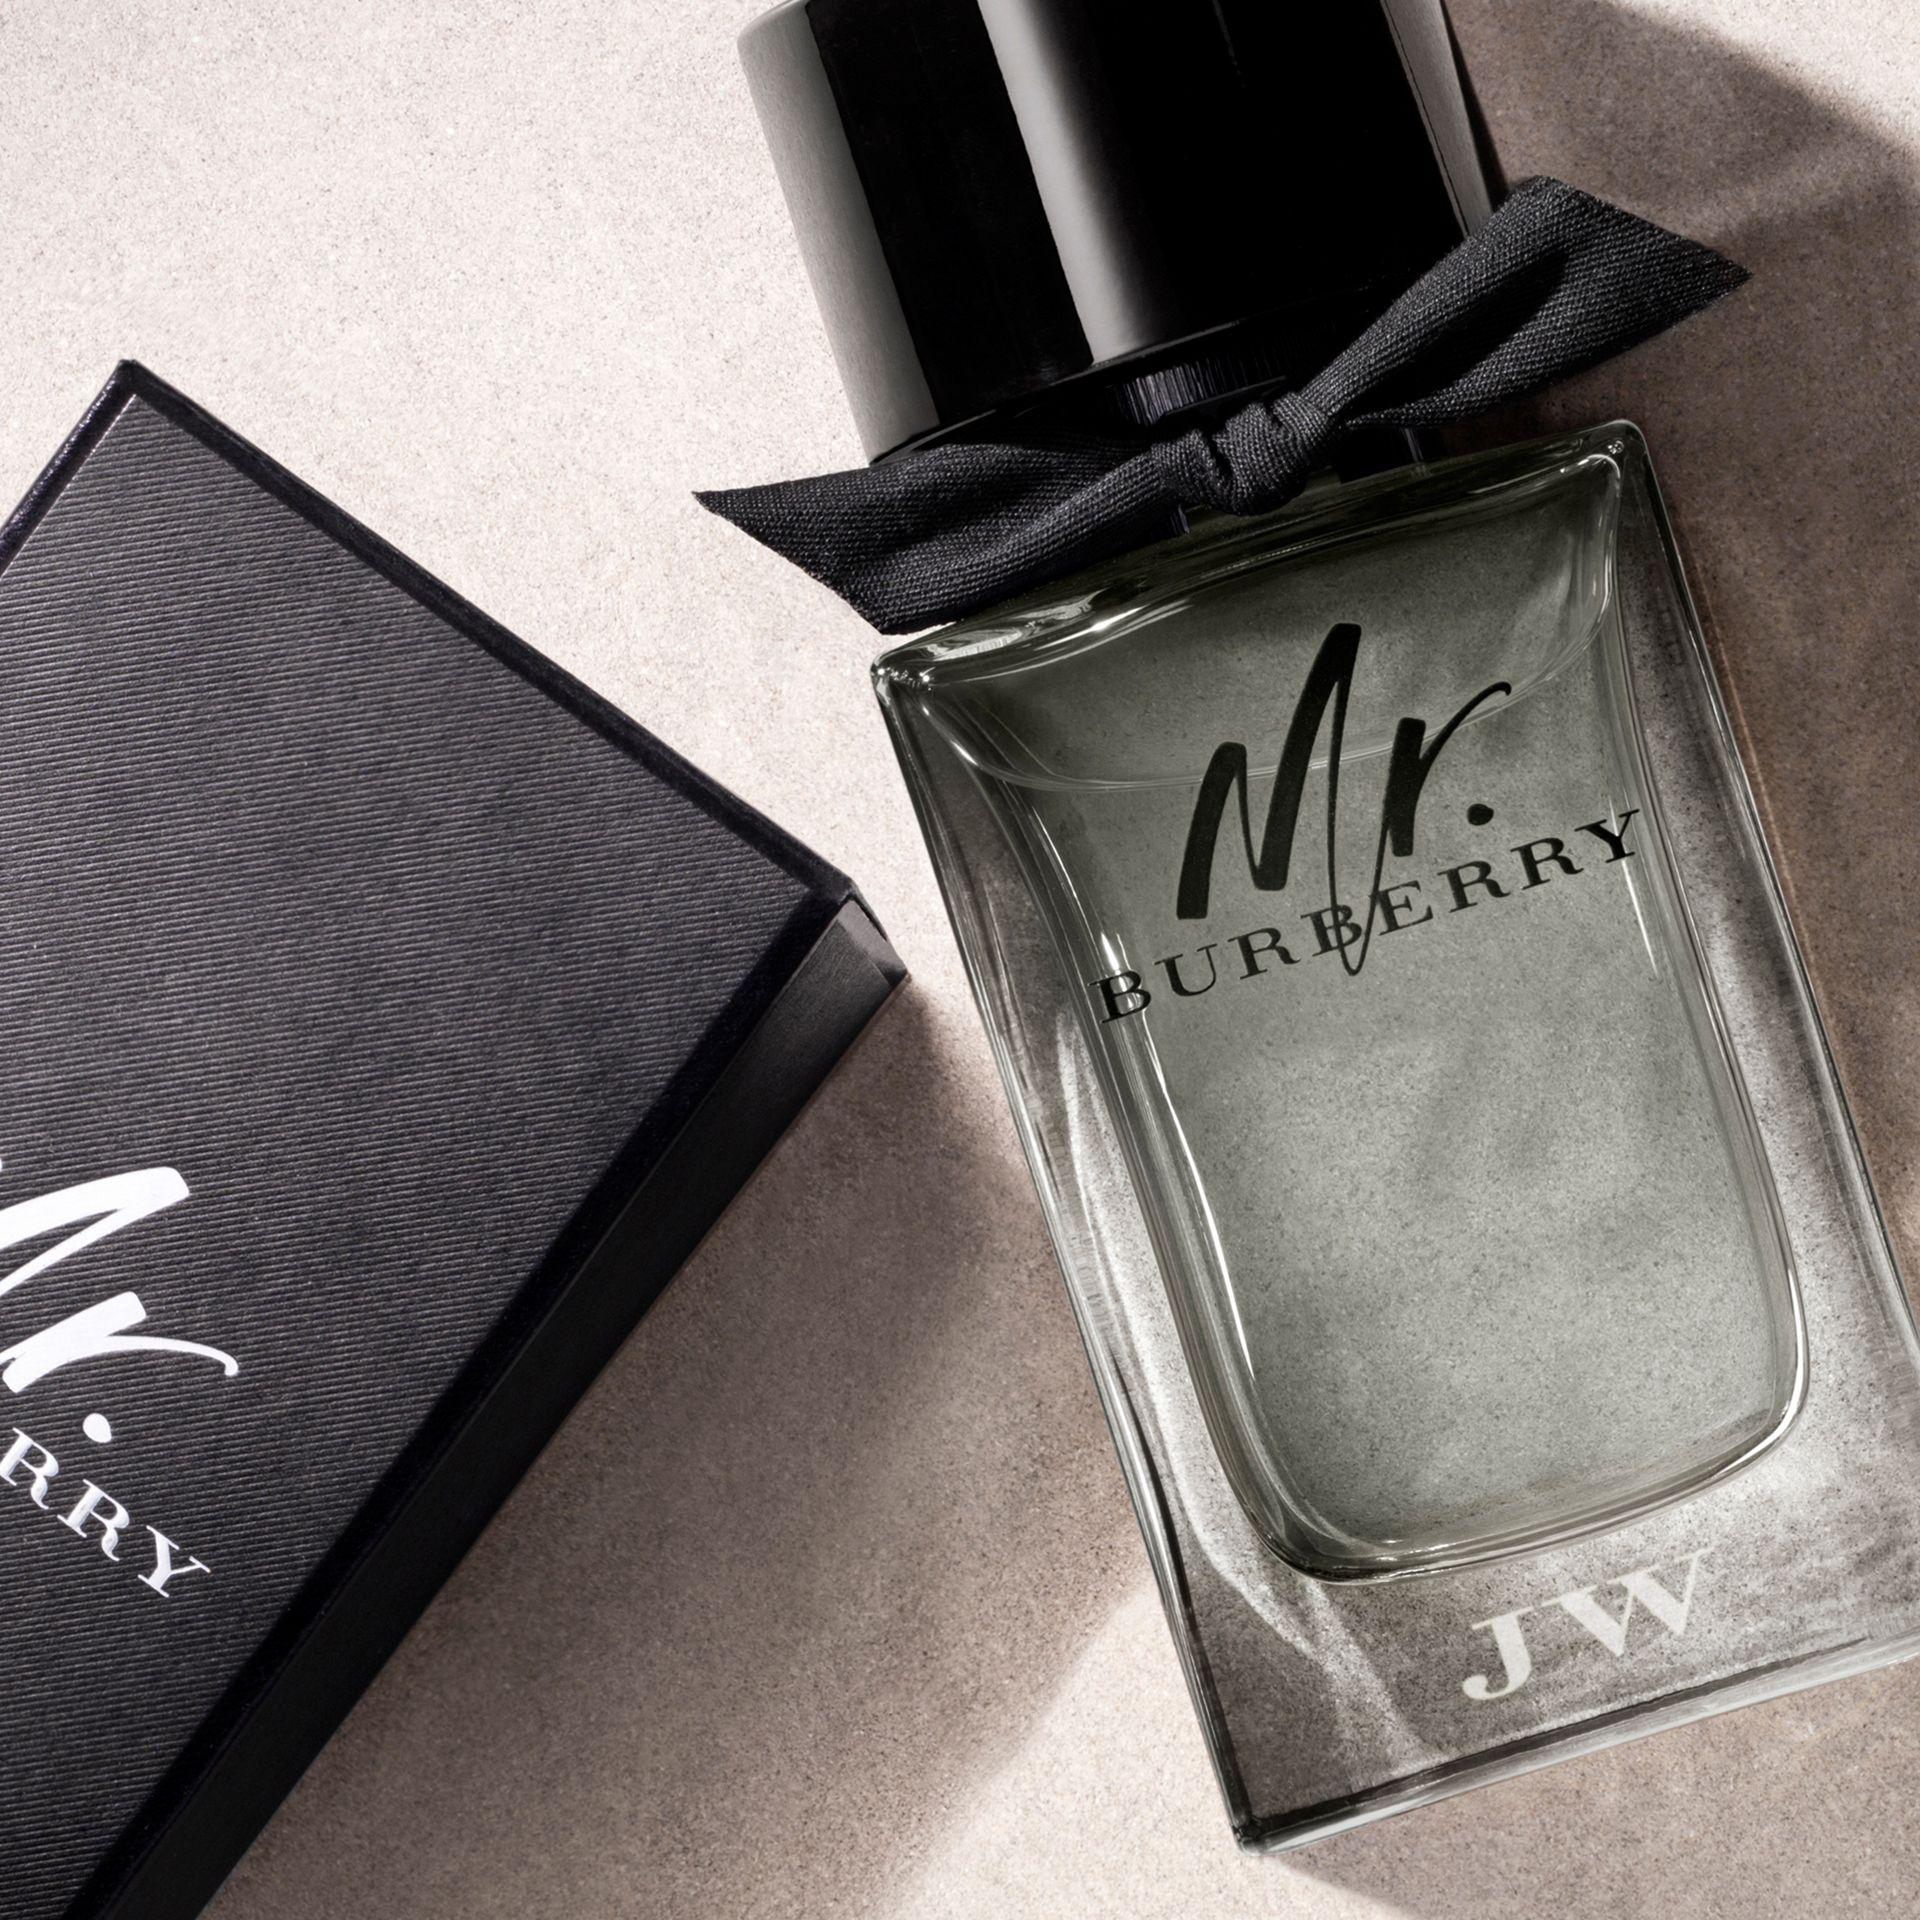 Mr. Burberry Eau de Toilette 1000 ml - immagine della galleria 4